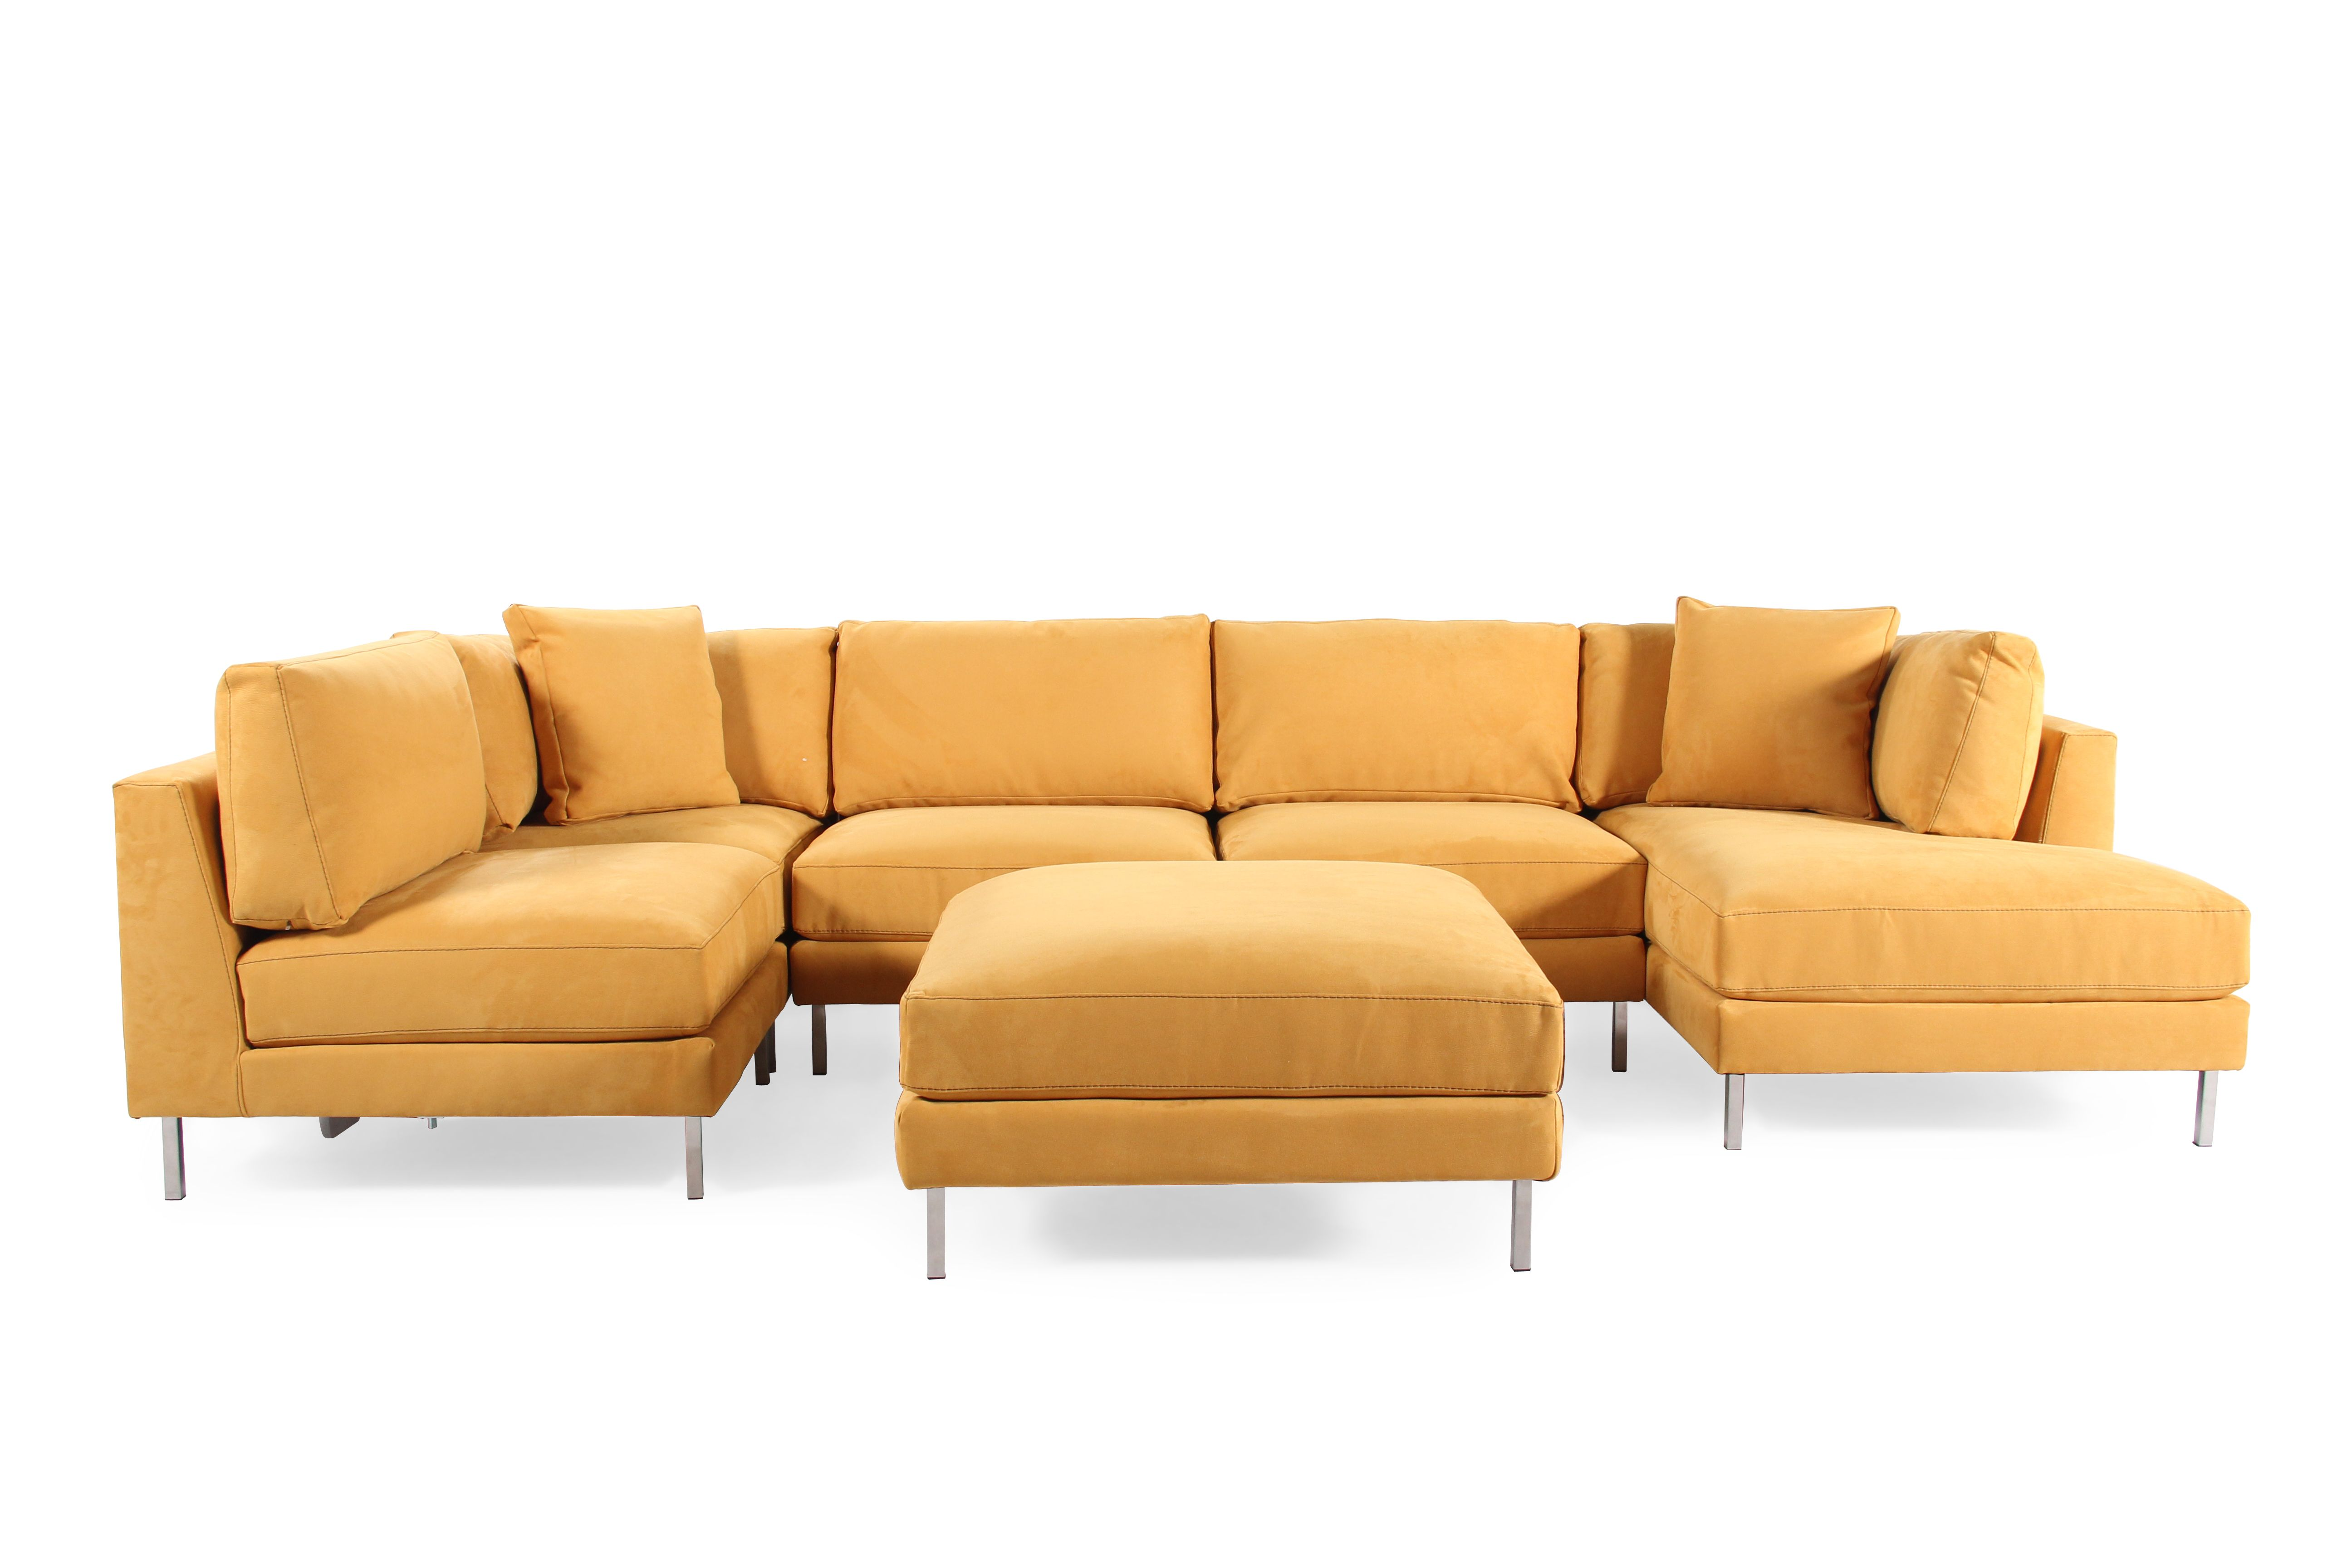 Jonathan Louis Remy Six Piece Sectional Sectional Sofa